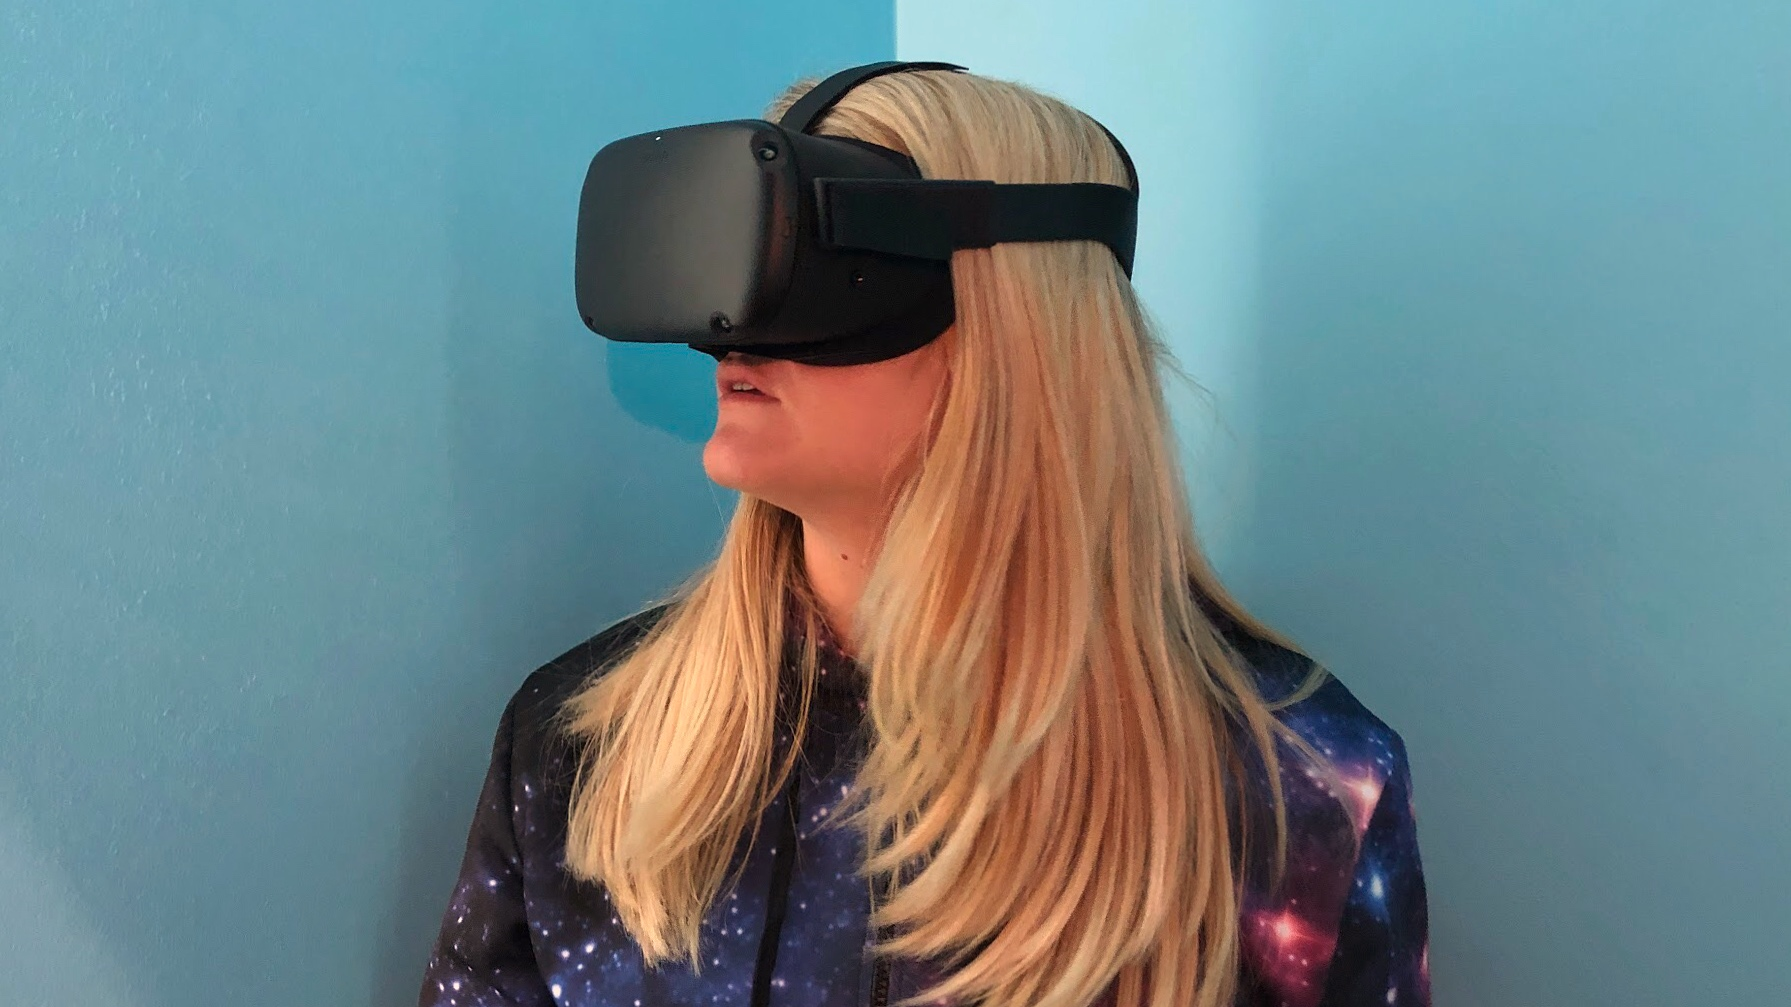 A photo of Becca wearing the Oculus Quest